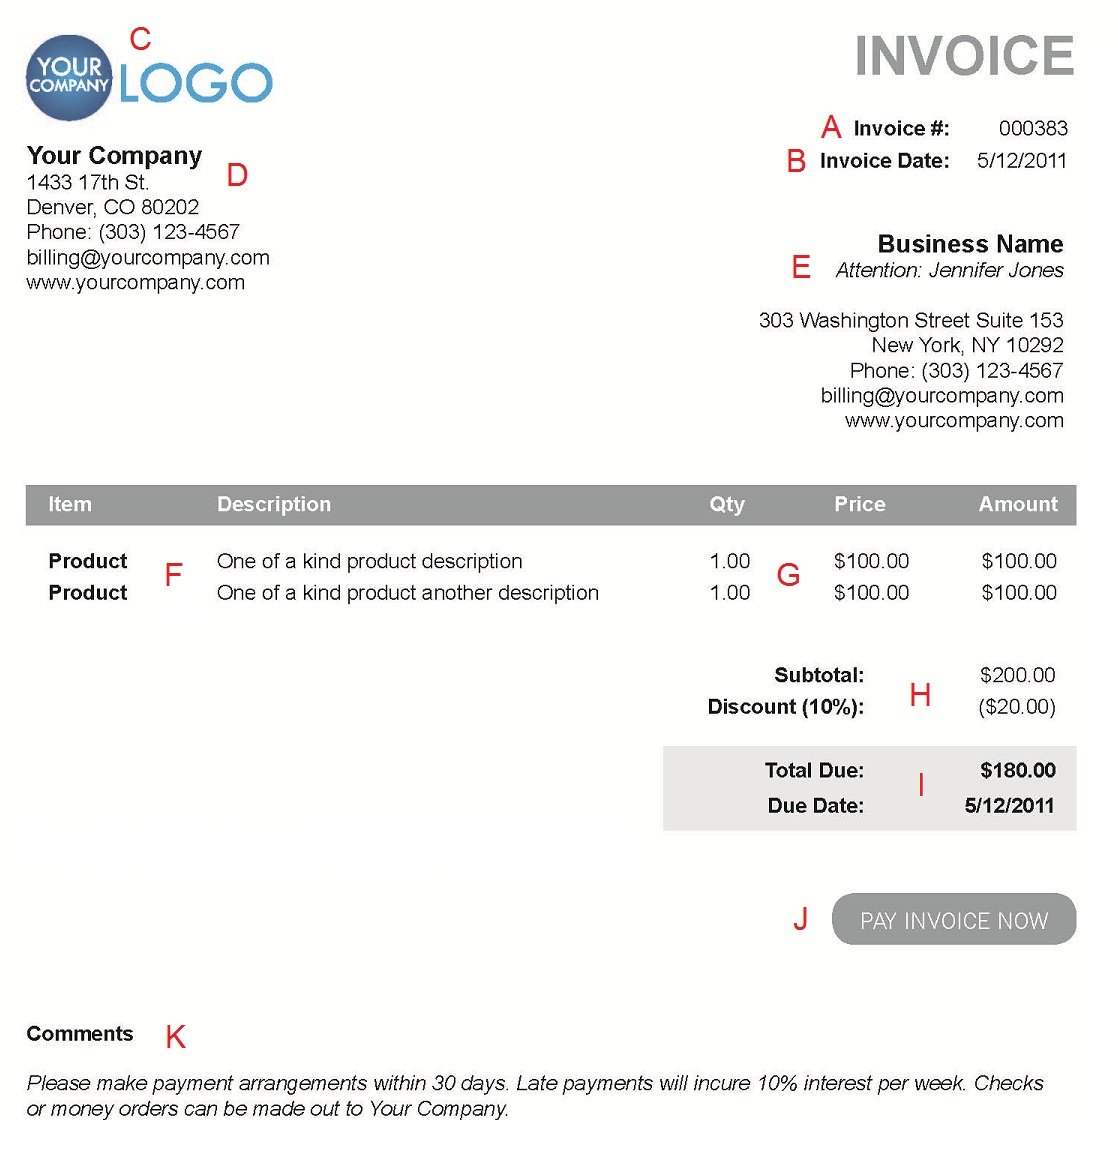 Totallocalus  Picturesque The  Different Sections Of An Electronic Payment Invoice With Goodlooking A  With Alluring Open Invoicing Also Advantages Of Invoice In Addition Invoice Services Template And Free Printable Invoice Forms Billing As Well As Online Invoice Generator Uk Additionally Example Vat Invoice From Paysimplecom With Totallocalus  Goodlooking The  Different Sections Of An Electronic Payment Invoice With Alluring A  And Picturesque Open Invoicing Also Advantages Of Invoice In Addition Invoice Services Template From Paysimplecom